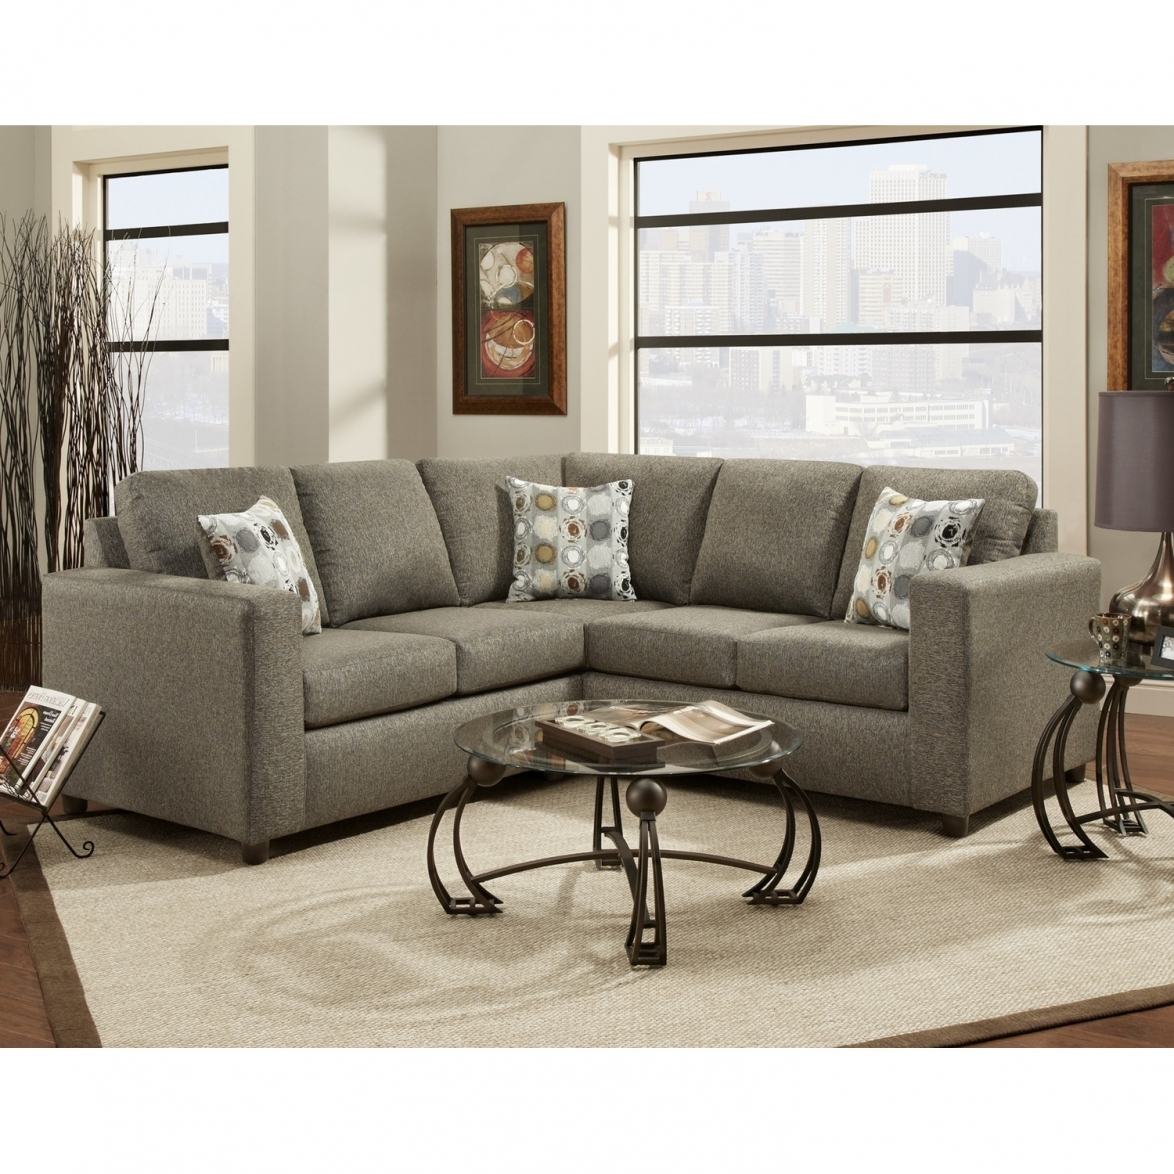 10 Inspirations Jacksonville Florida Sectional Sofas | Sofa Ideas